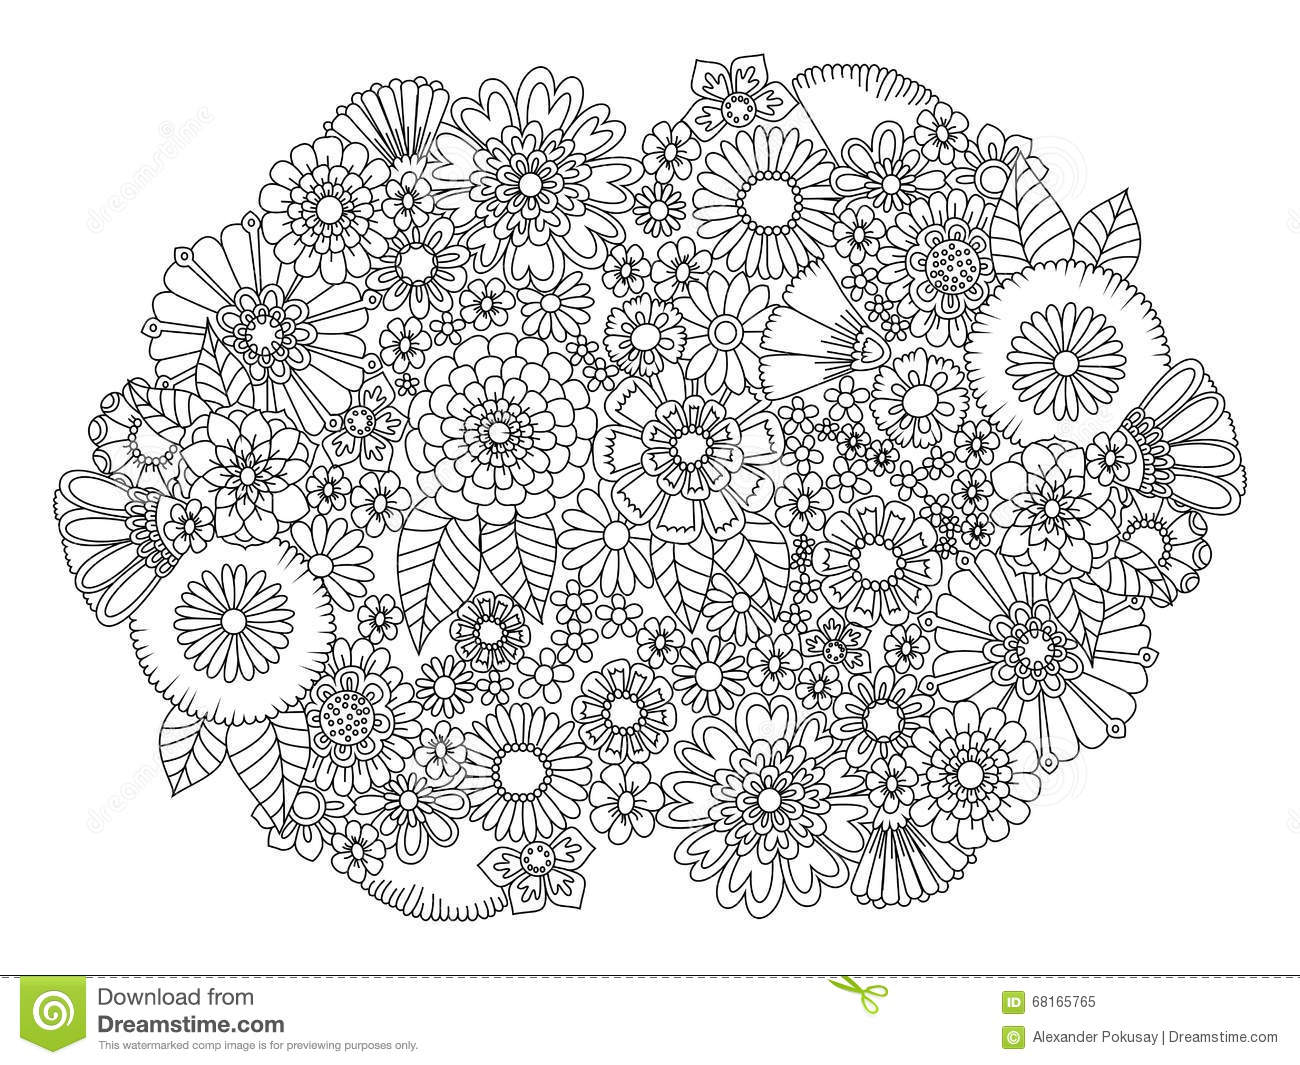 Adults and coloring books - Adults And Coloring Books Flowers Ornament Coloring Book For Adults Vector Download